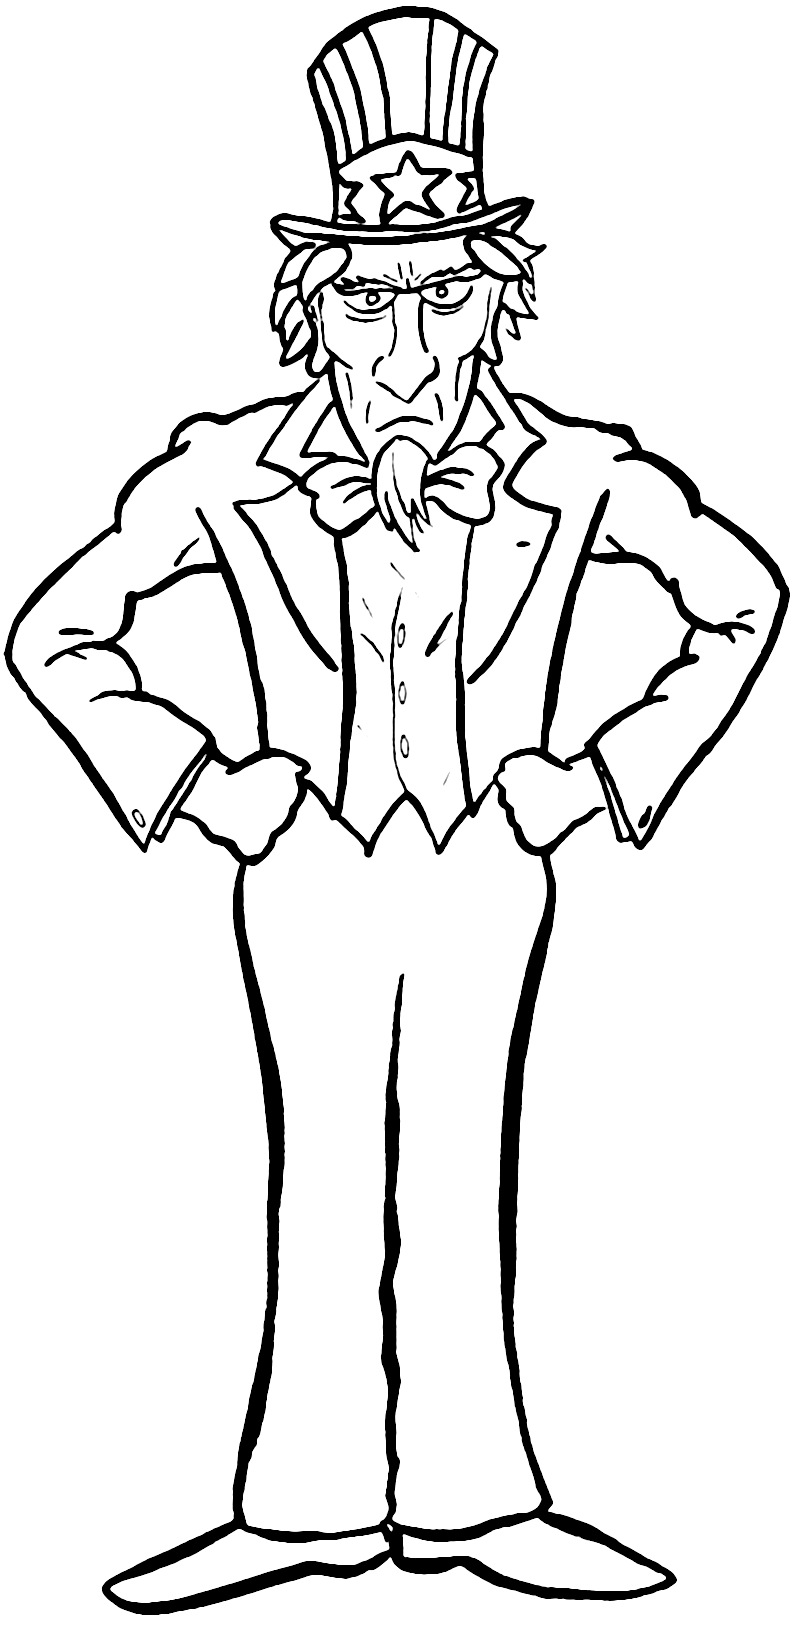 Uncle sam coloring sheet by idoenjoyarting on deviantart for Uncle coloring pages